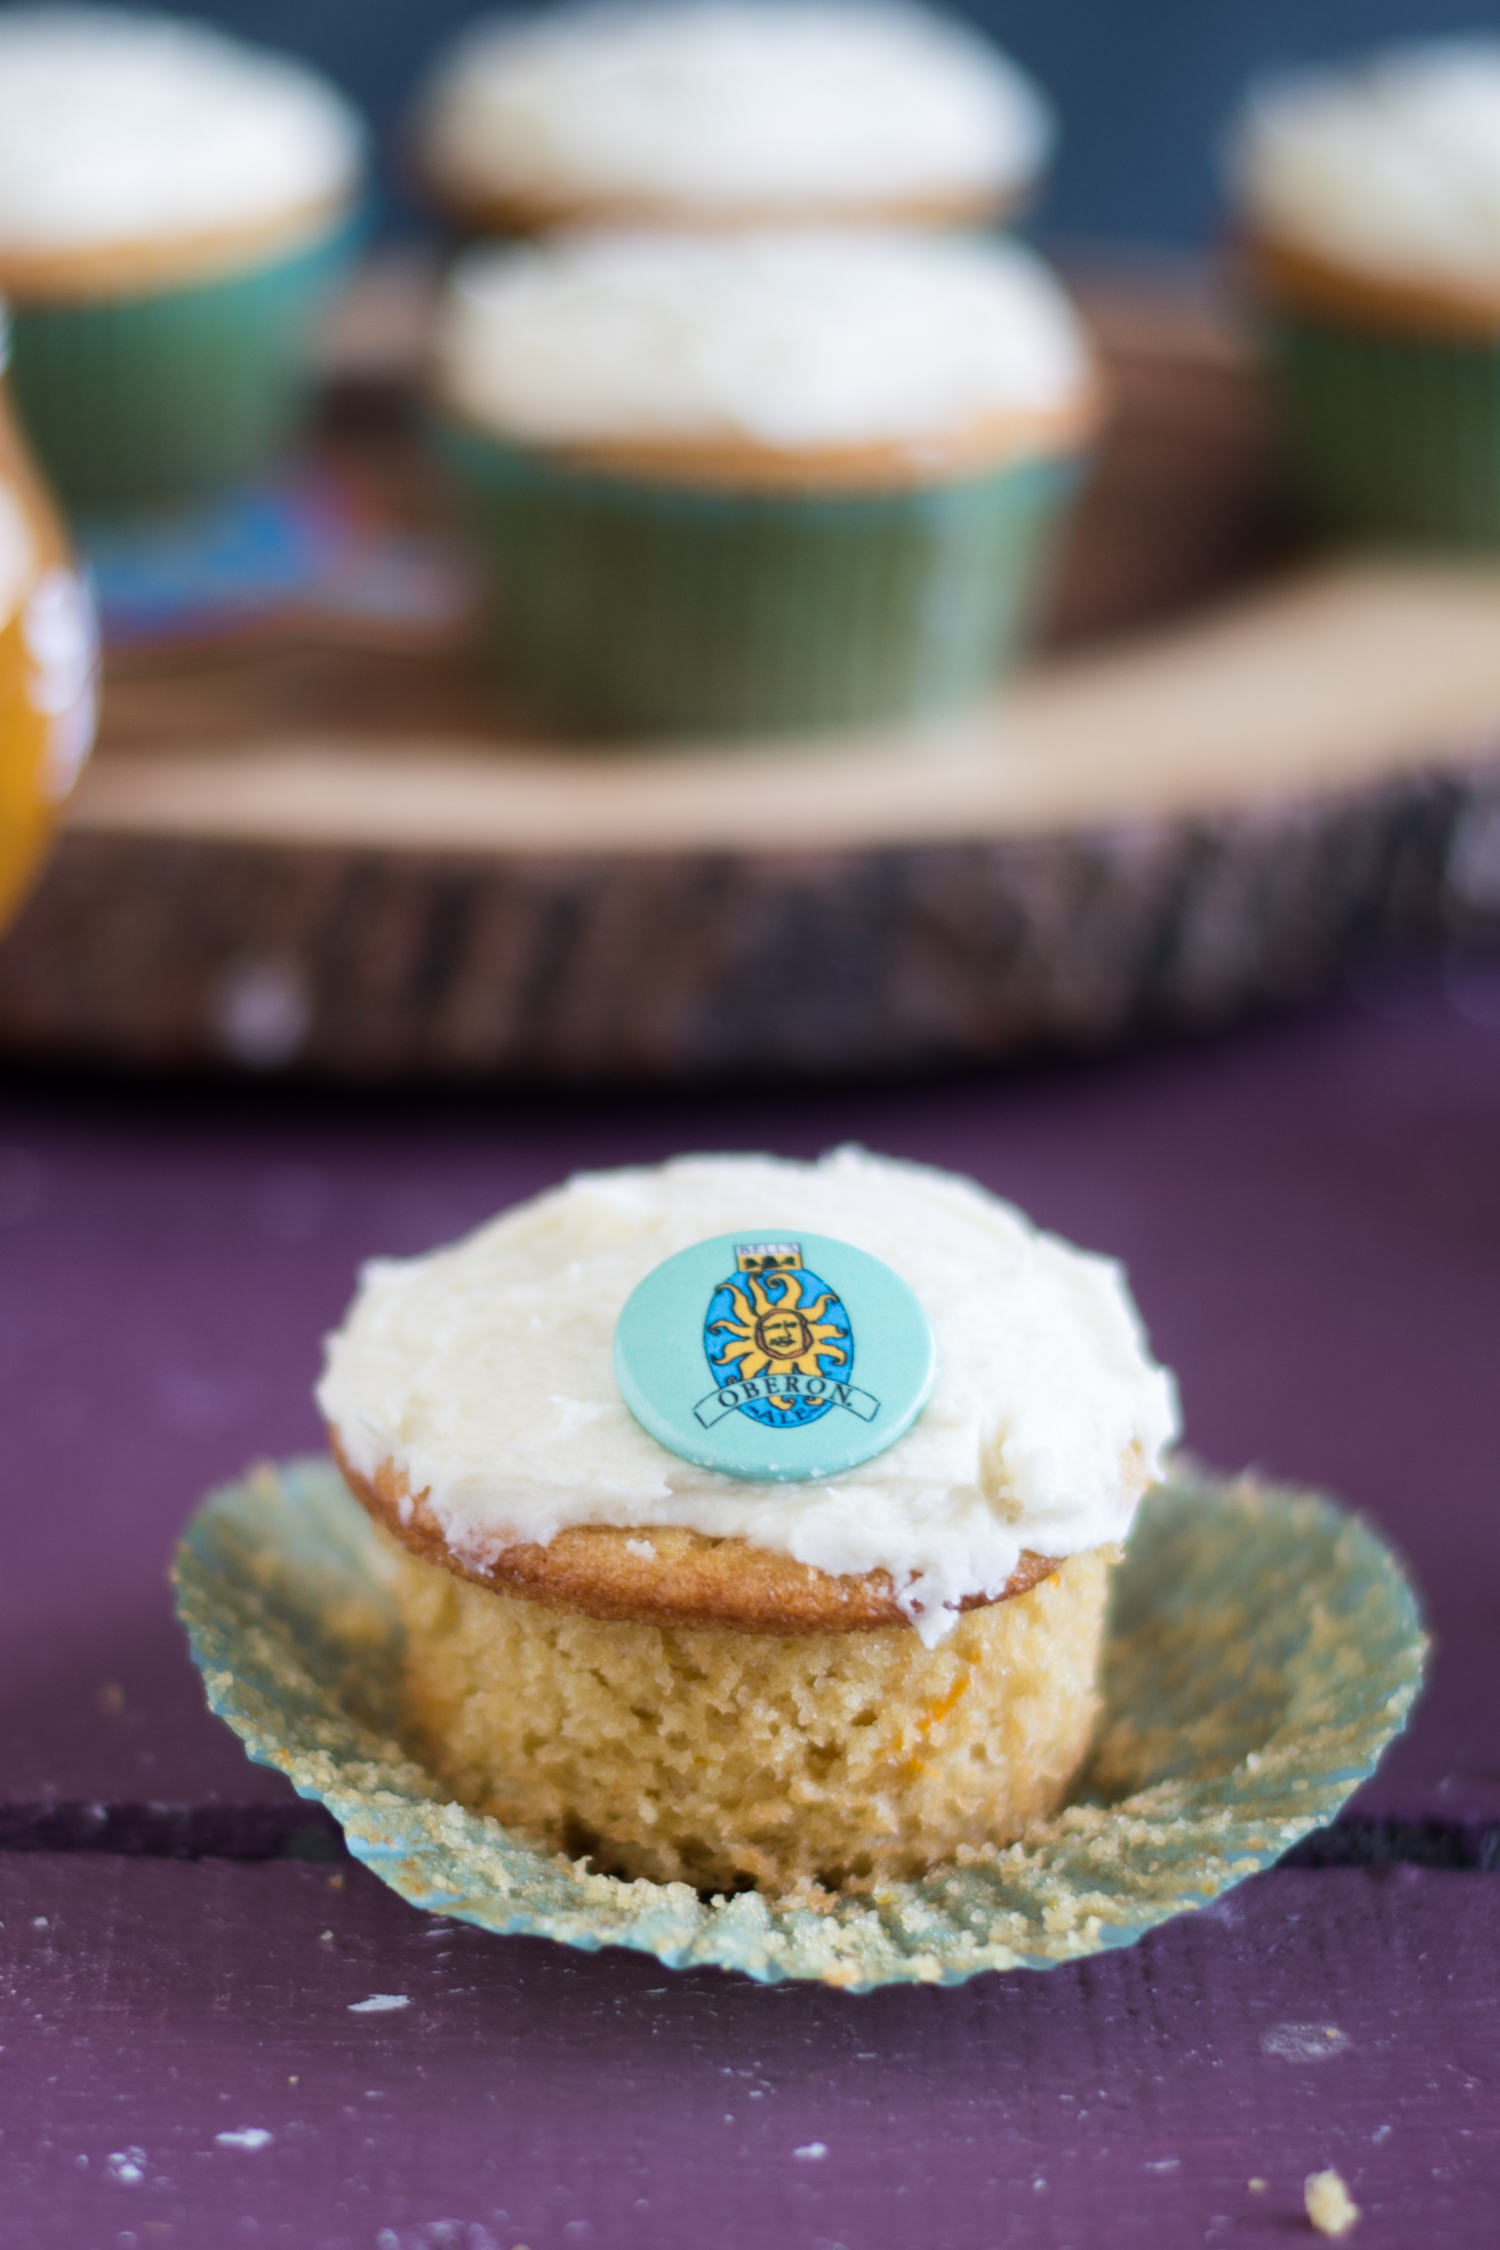 Oberon Orange Cupcakes are the perfect cupcake for spring and summer! #cupcake #dessert